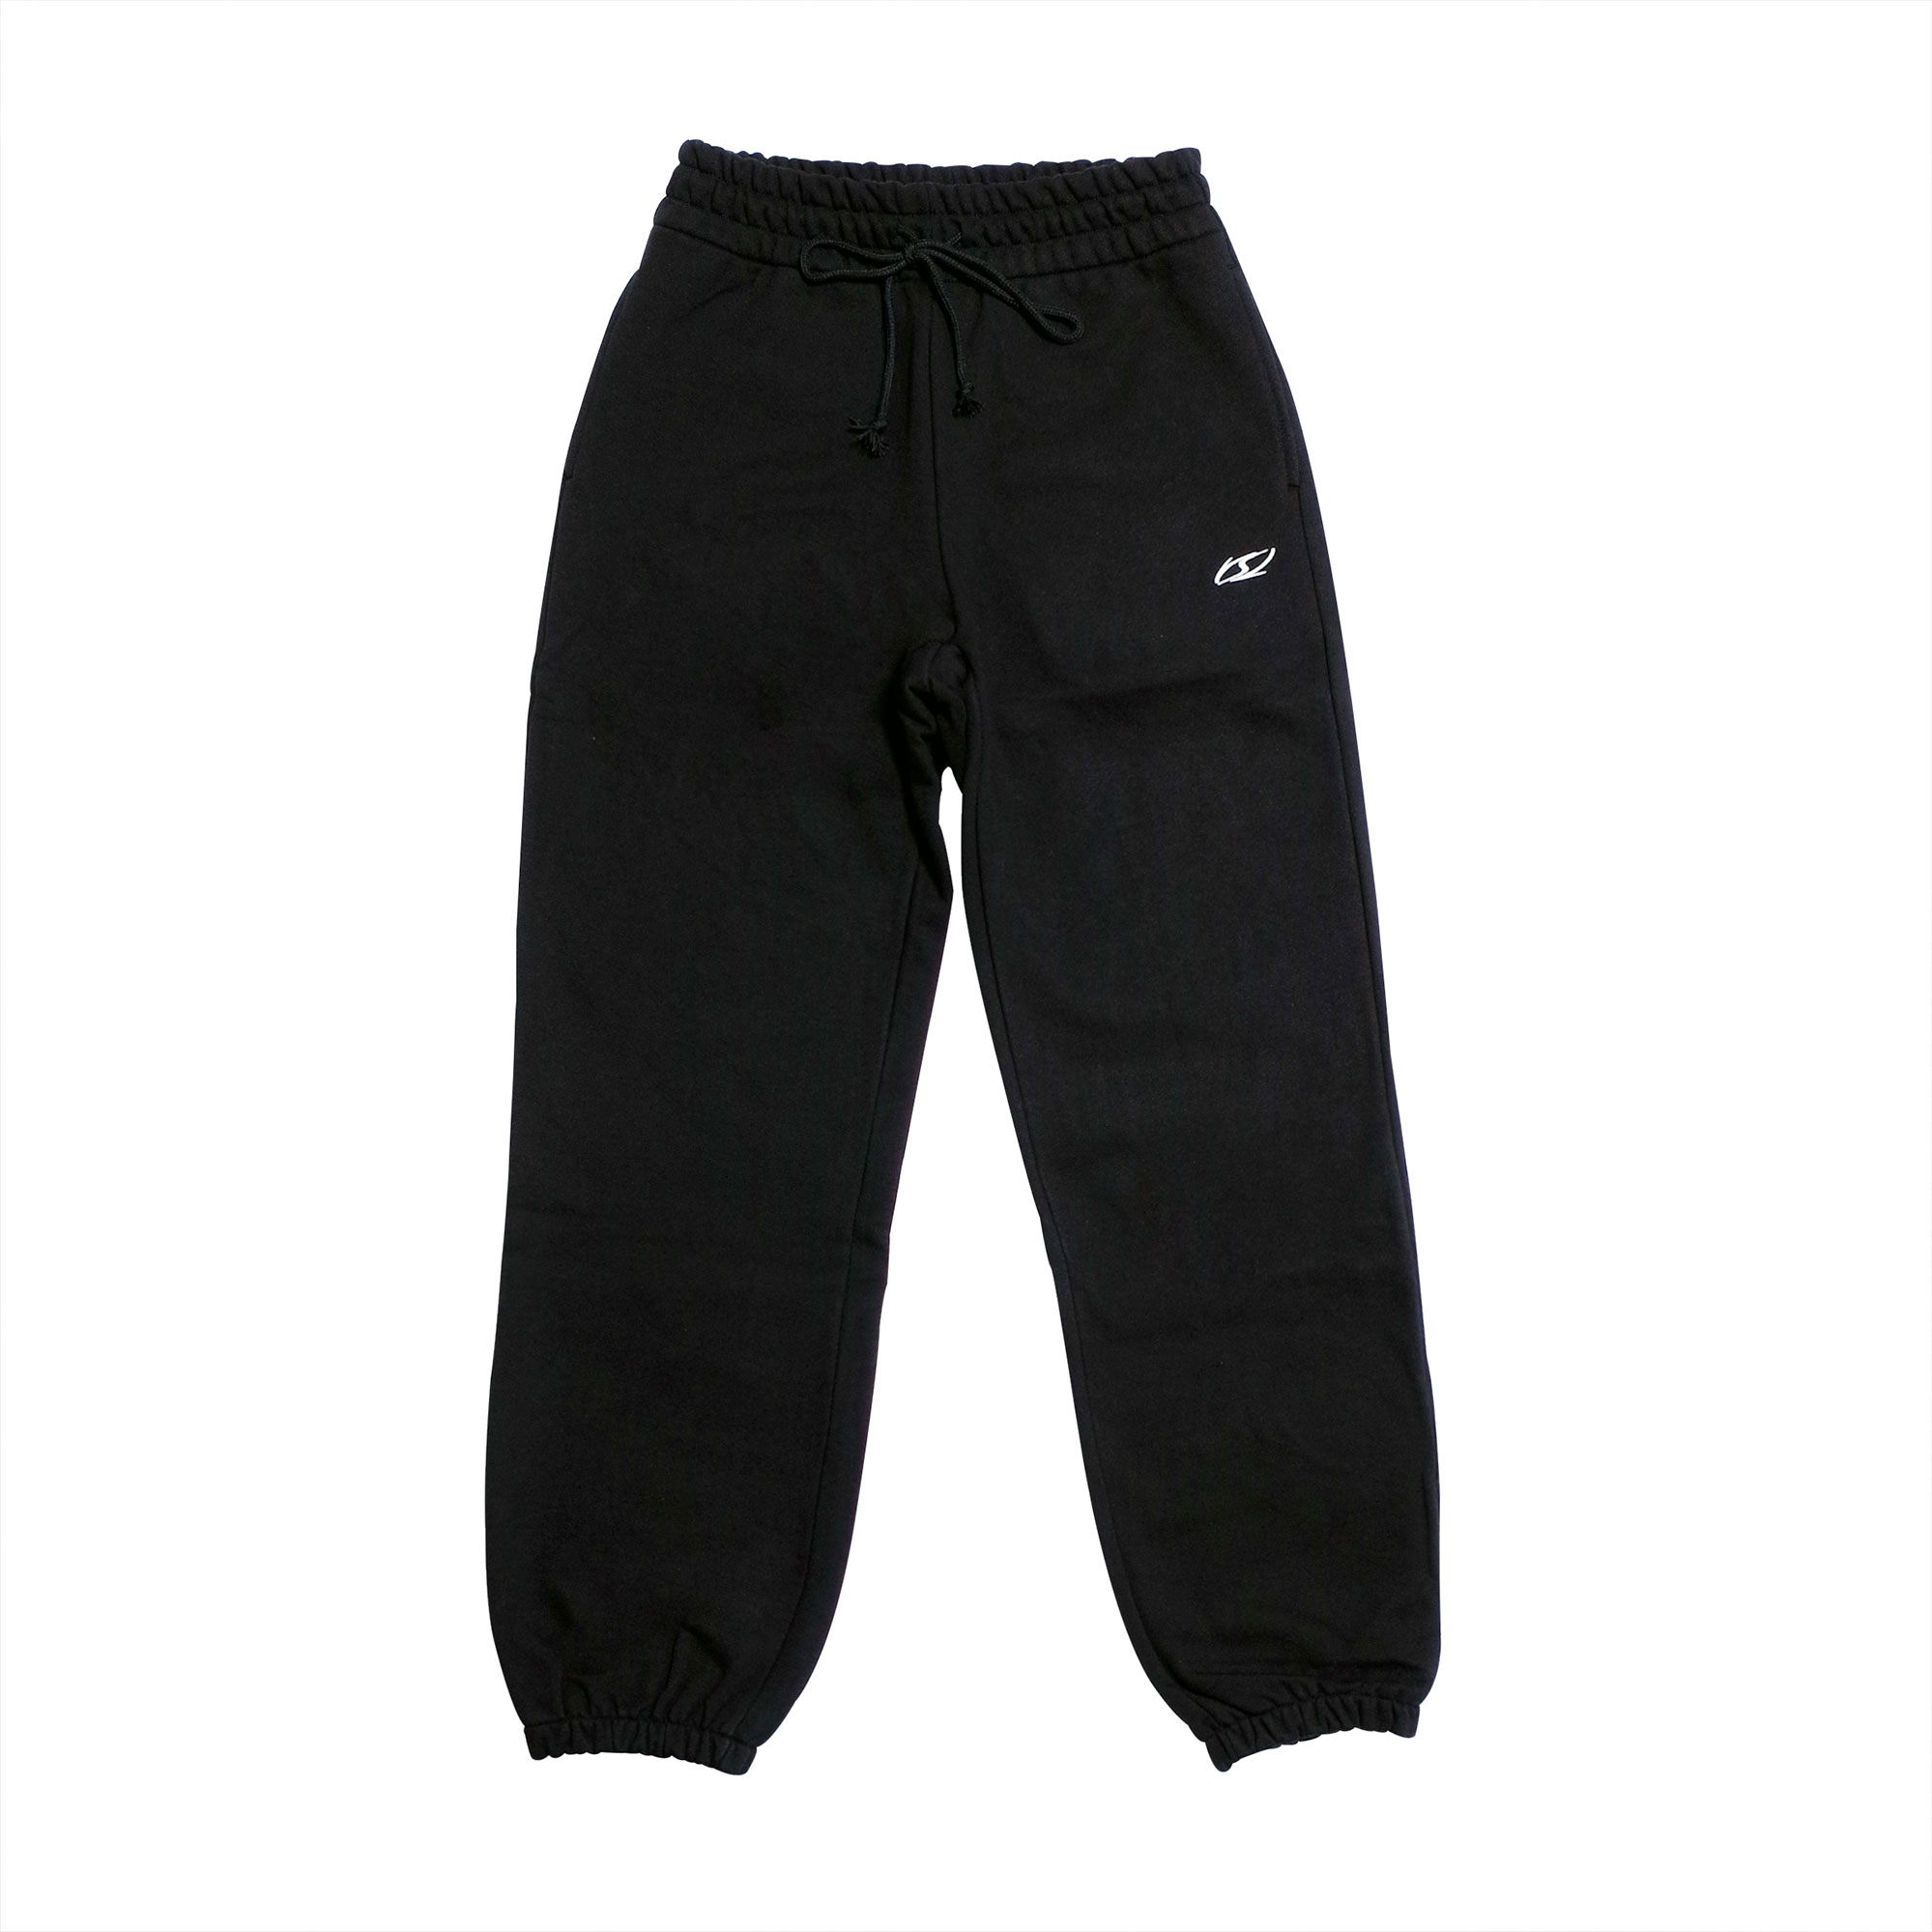 VSL SWEAT PANTS - BLK